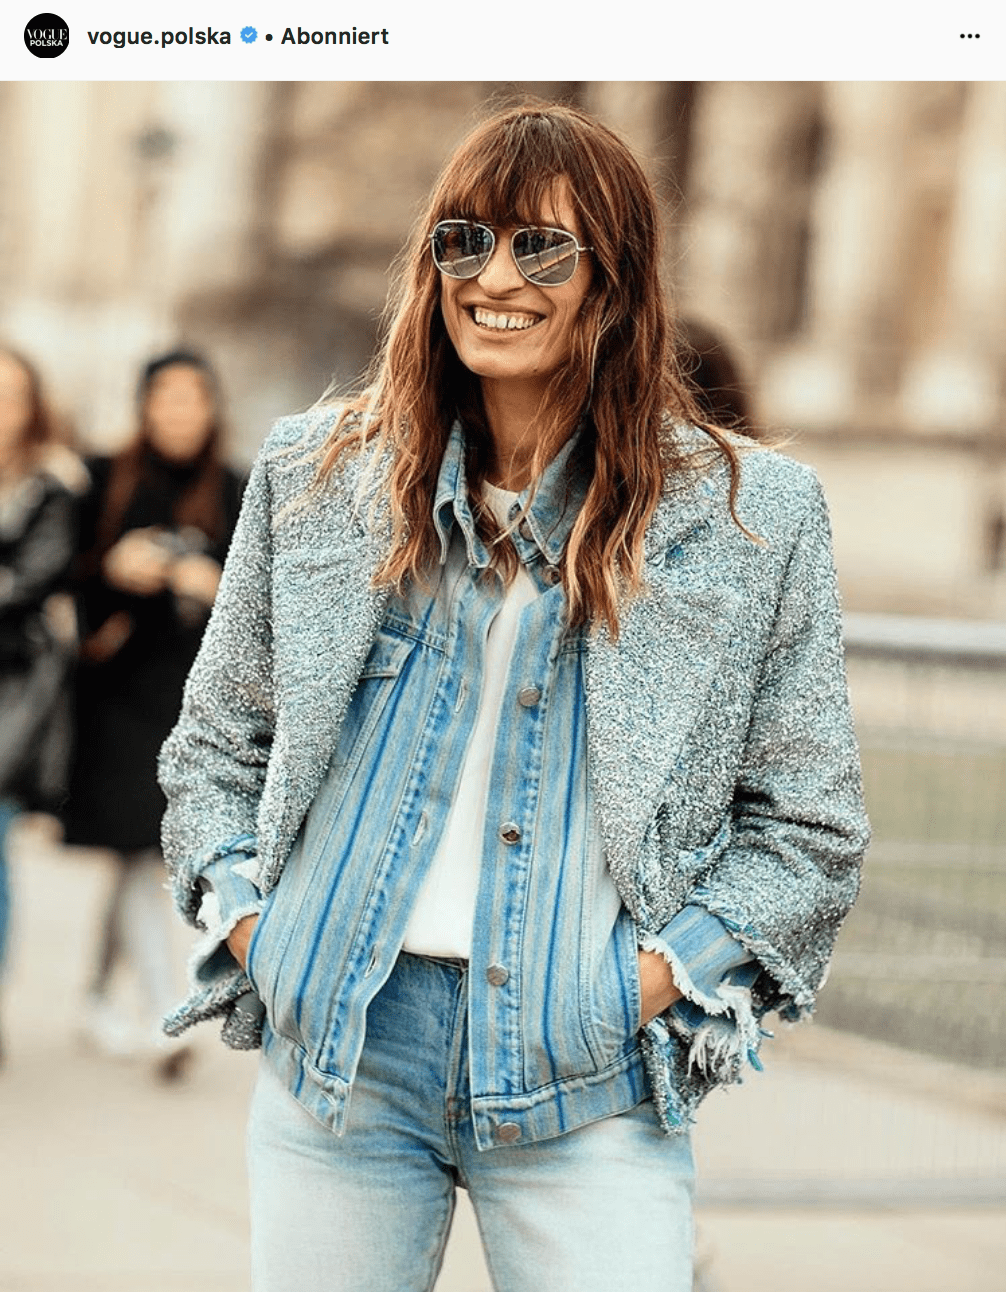 Paris, Paris Fashion Week, PFW, PFW18, Stripes, Basics, Outfit, Fashion, Fashion Blog, Fashion Blogger, Online-Magazine, Black and White, Ankle Boots, Details, Denim, Caroline de Maigret